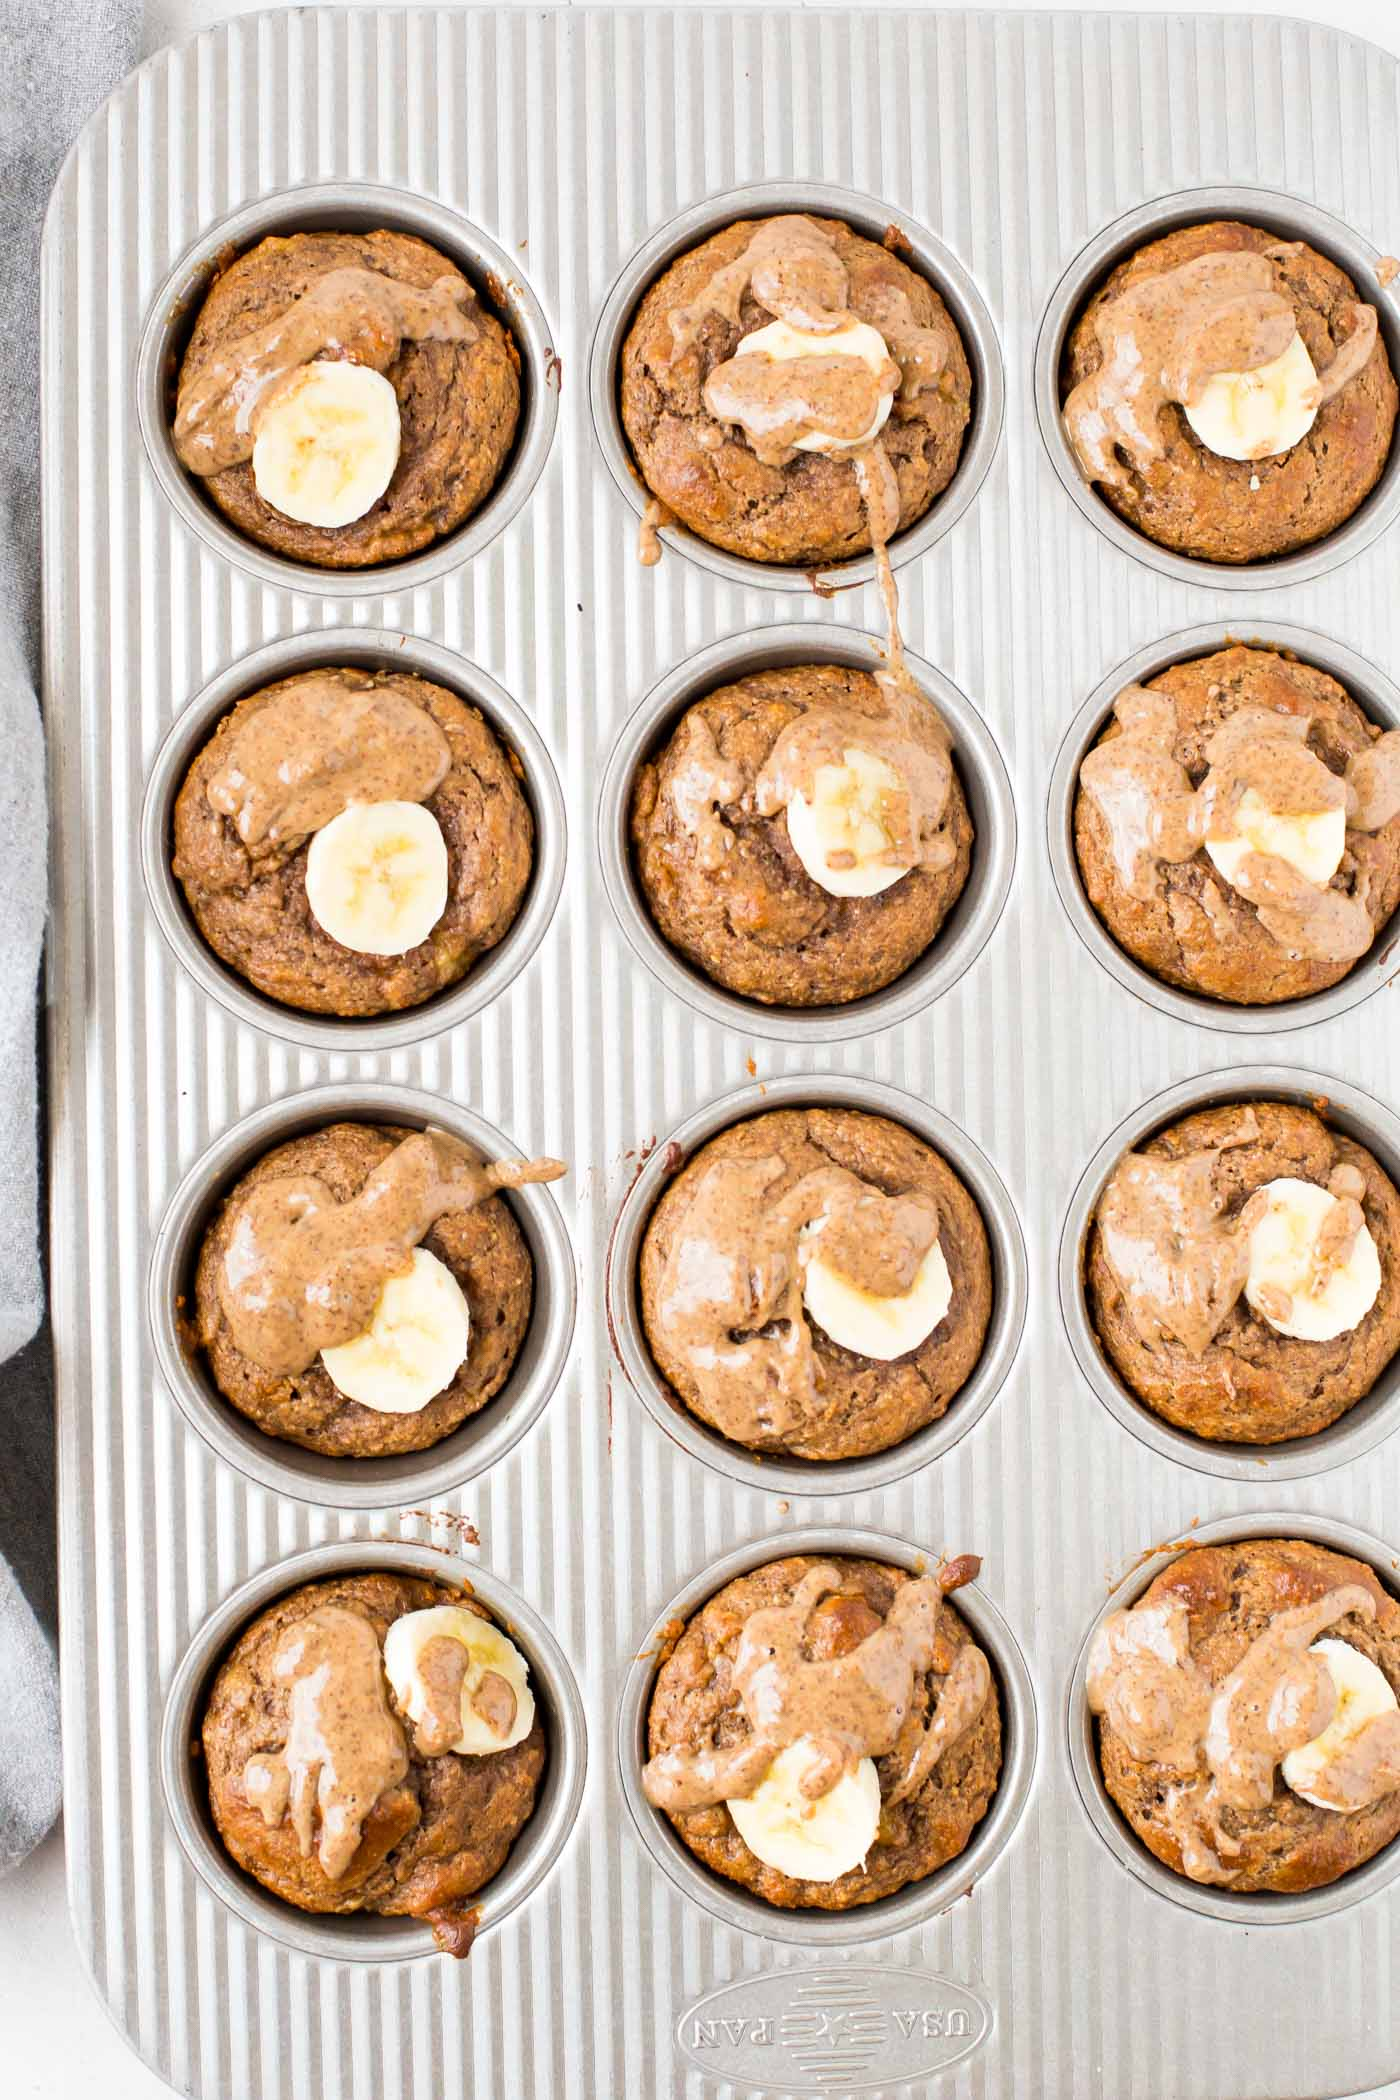 Twelve Banana Protein Powder Muffins in a muffin tin pan